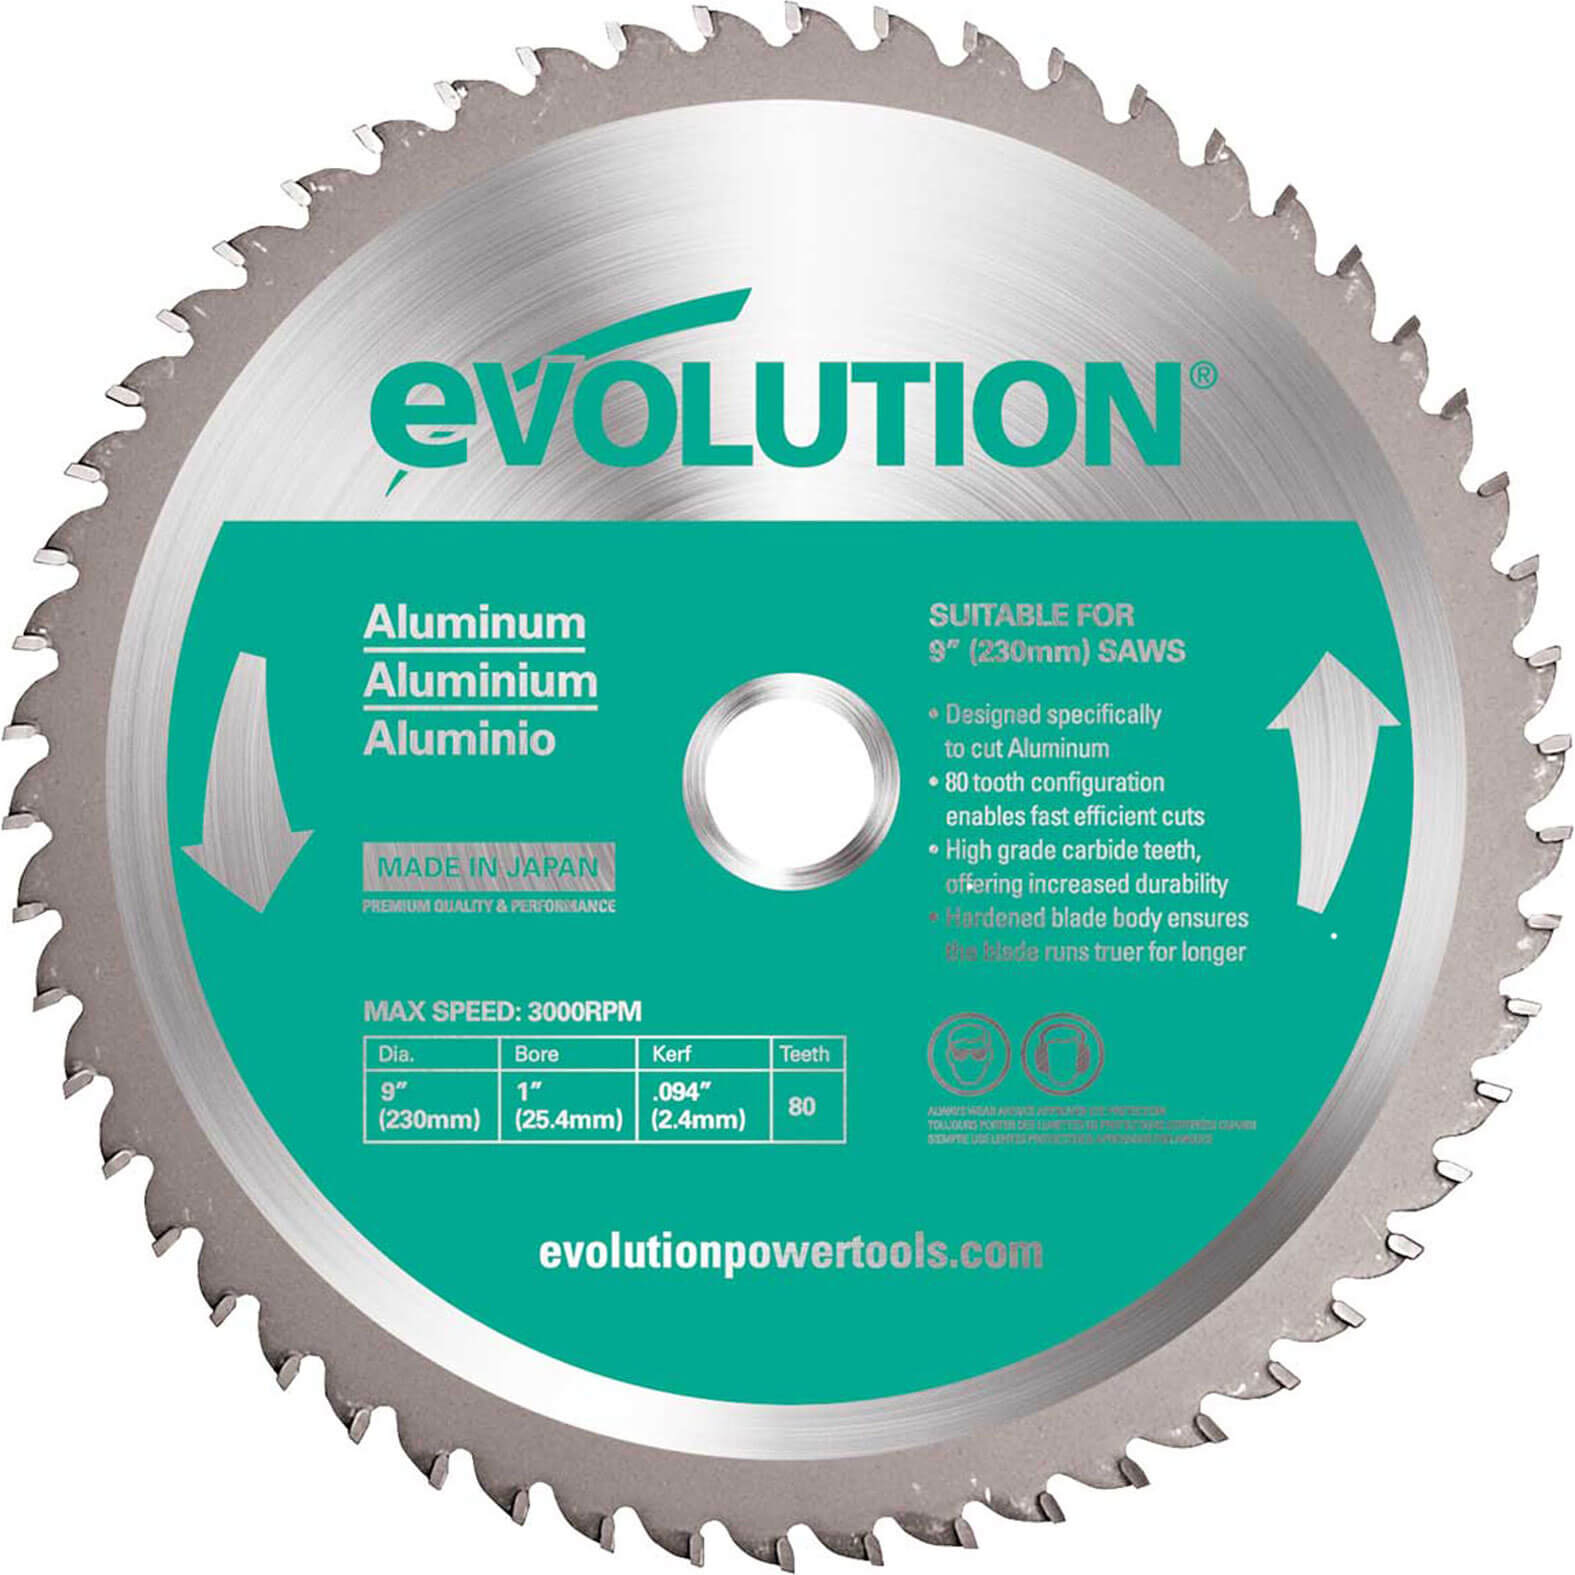 Image of Evolution Aluminium Cutting Saw Blade 230mm 80T 25.4mm